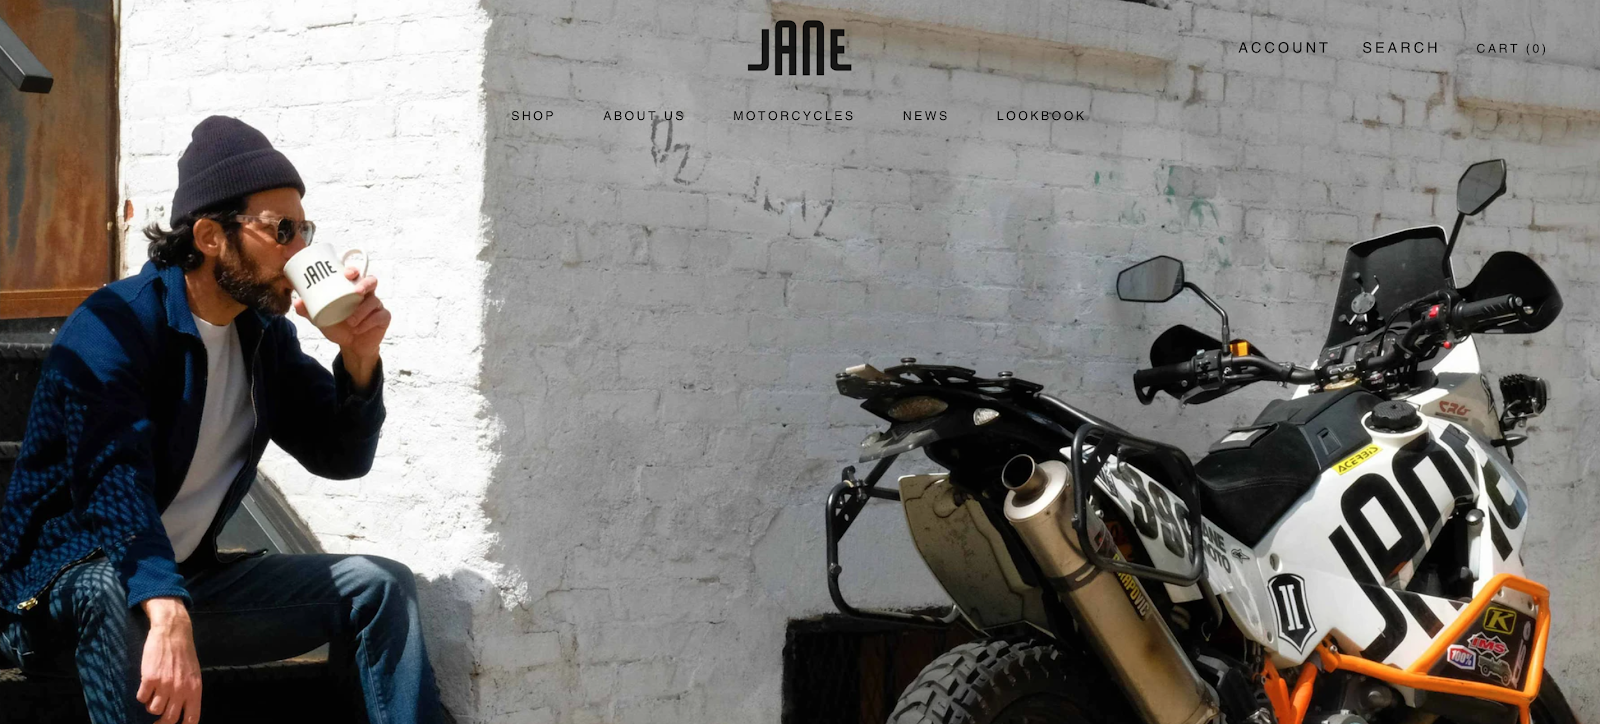 Jane Motorcycles homepage with man looking at motorcycle in the background